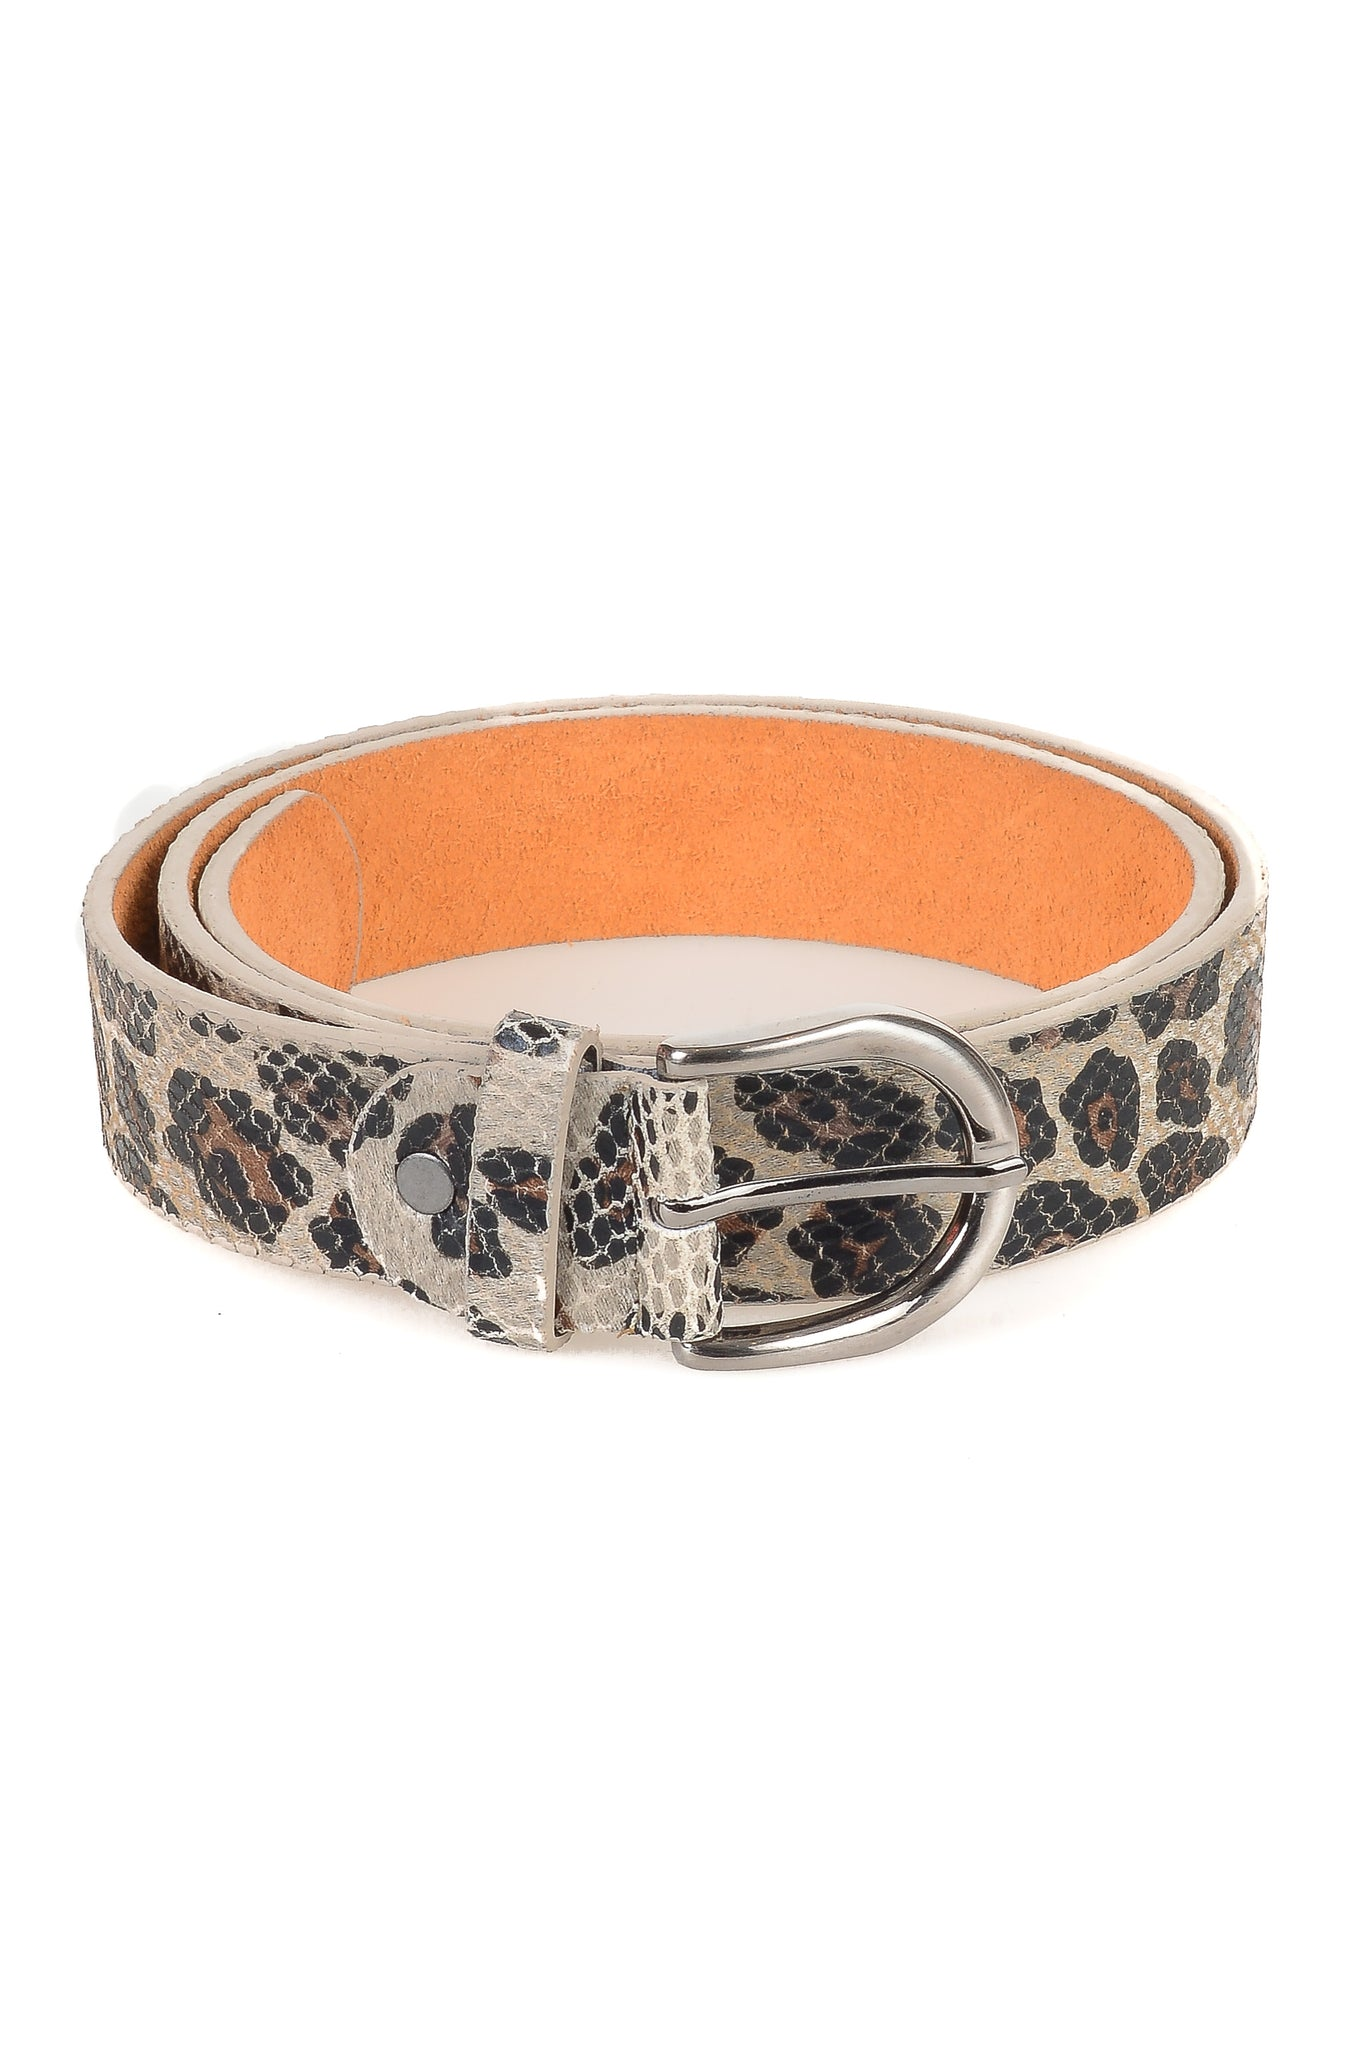 Textured Leopard Print Belt - Tom & Eva